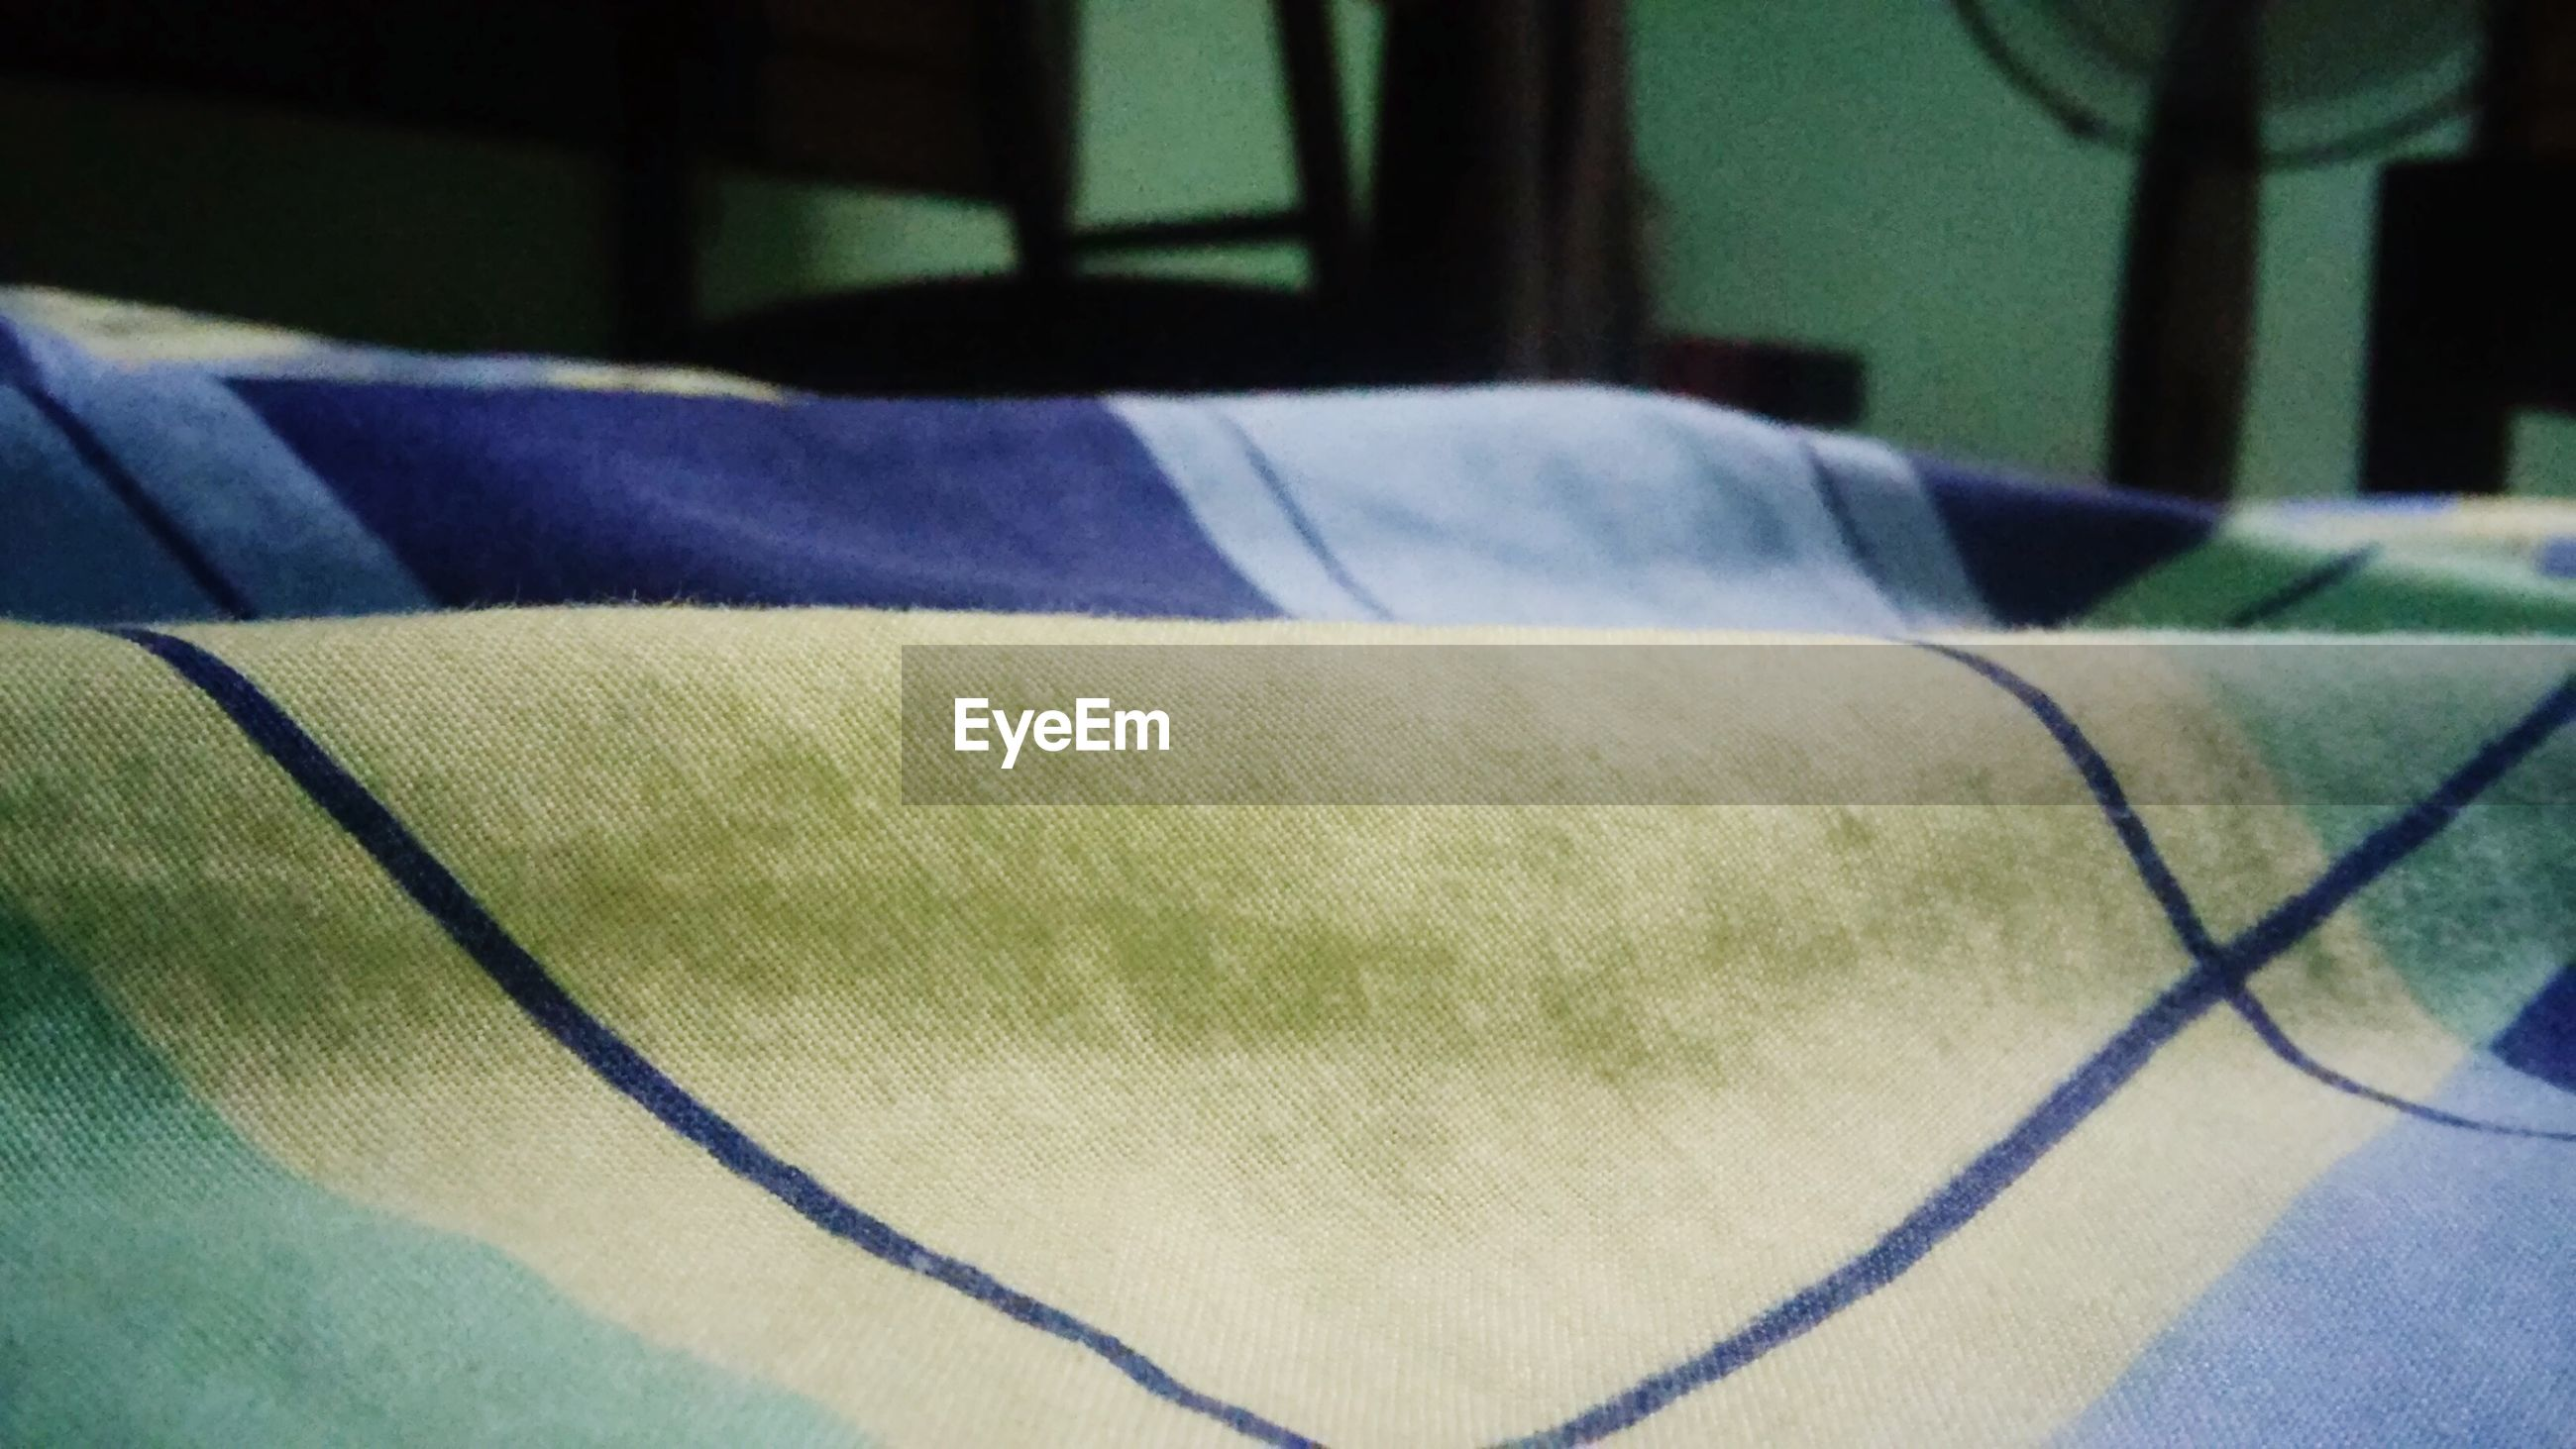 indoors, bed, bedroom, close-up, fabric, textile, book, pillow, home interior, sheet, paper, relaxation, sofa, table, cushion, blanket, absence, chair, still life, education